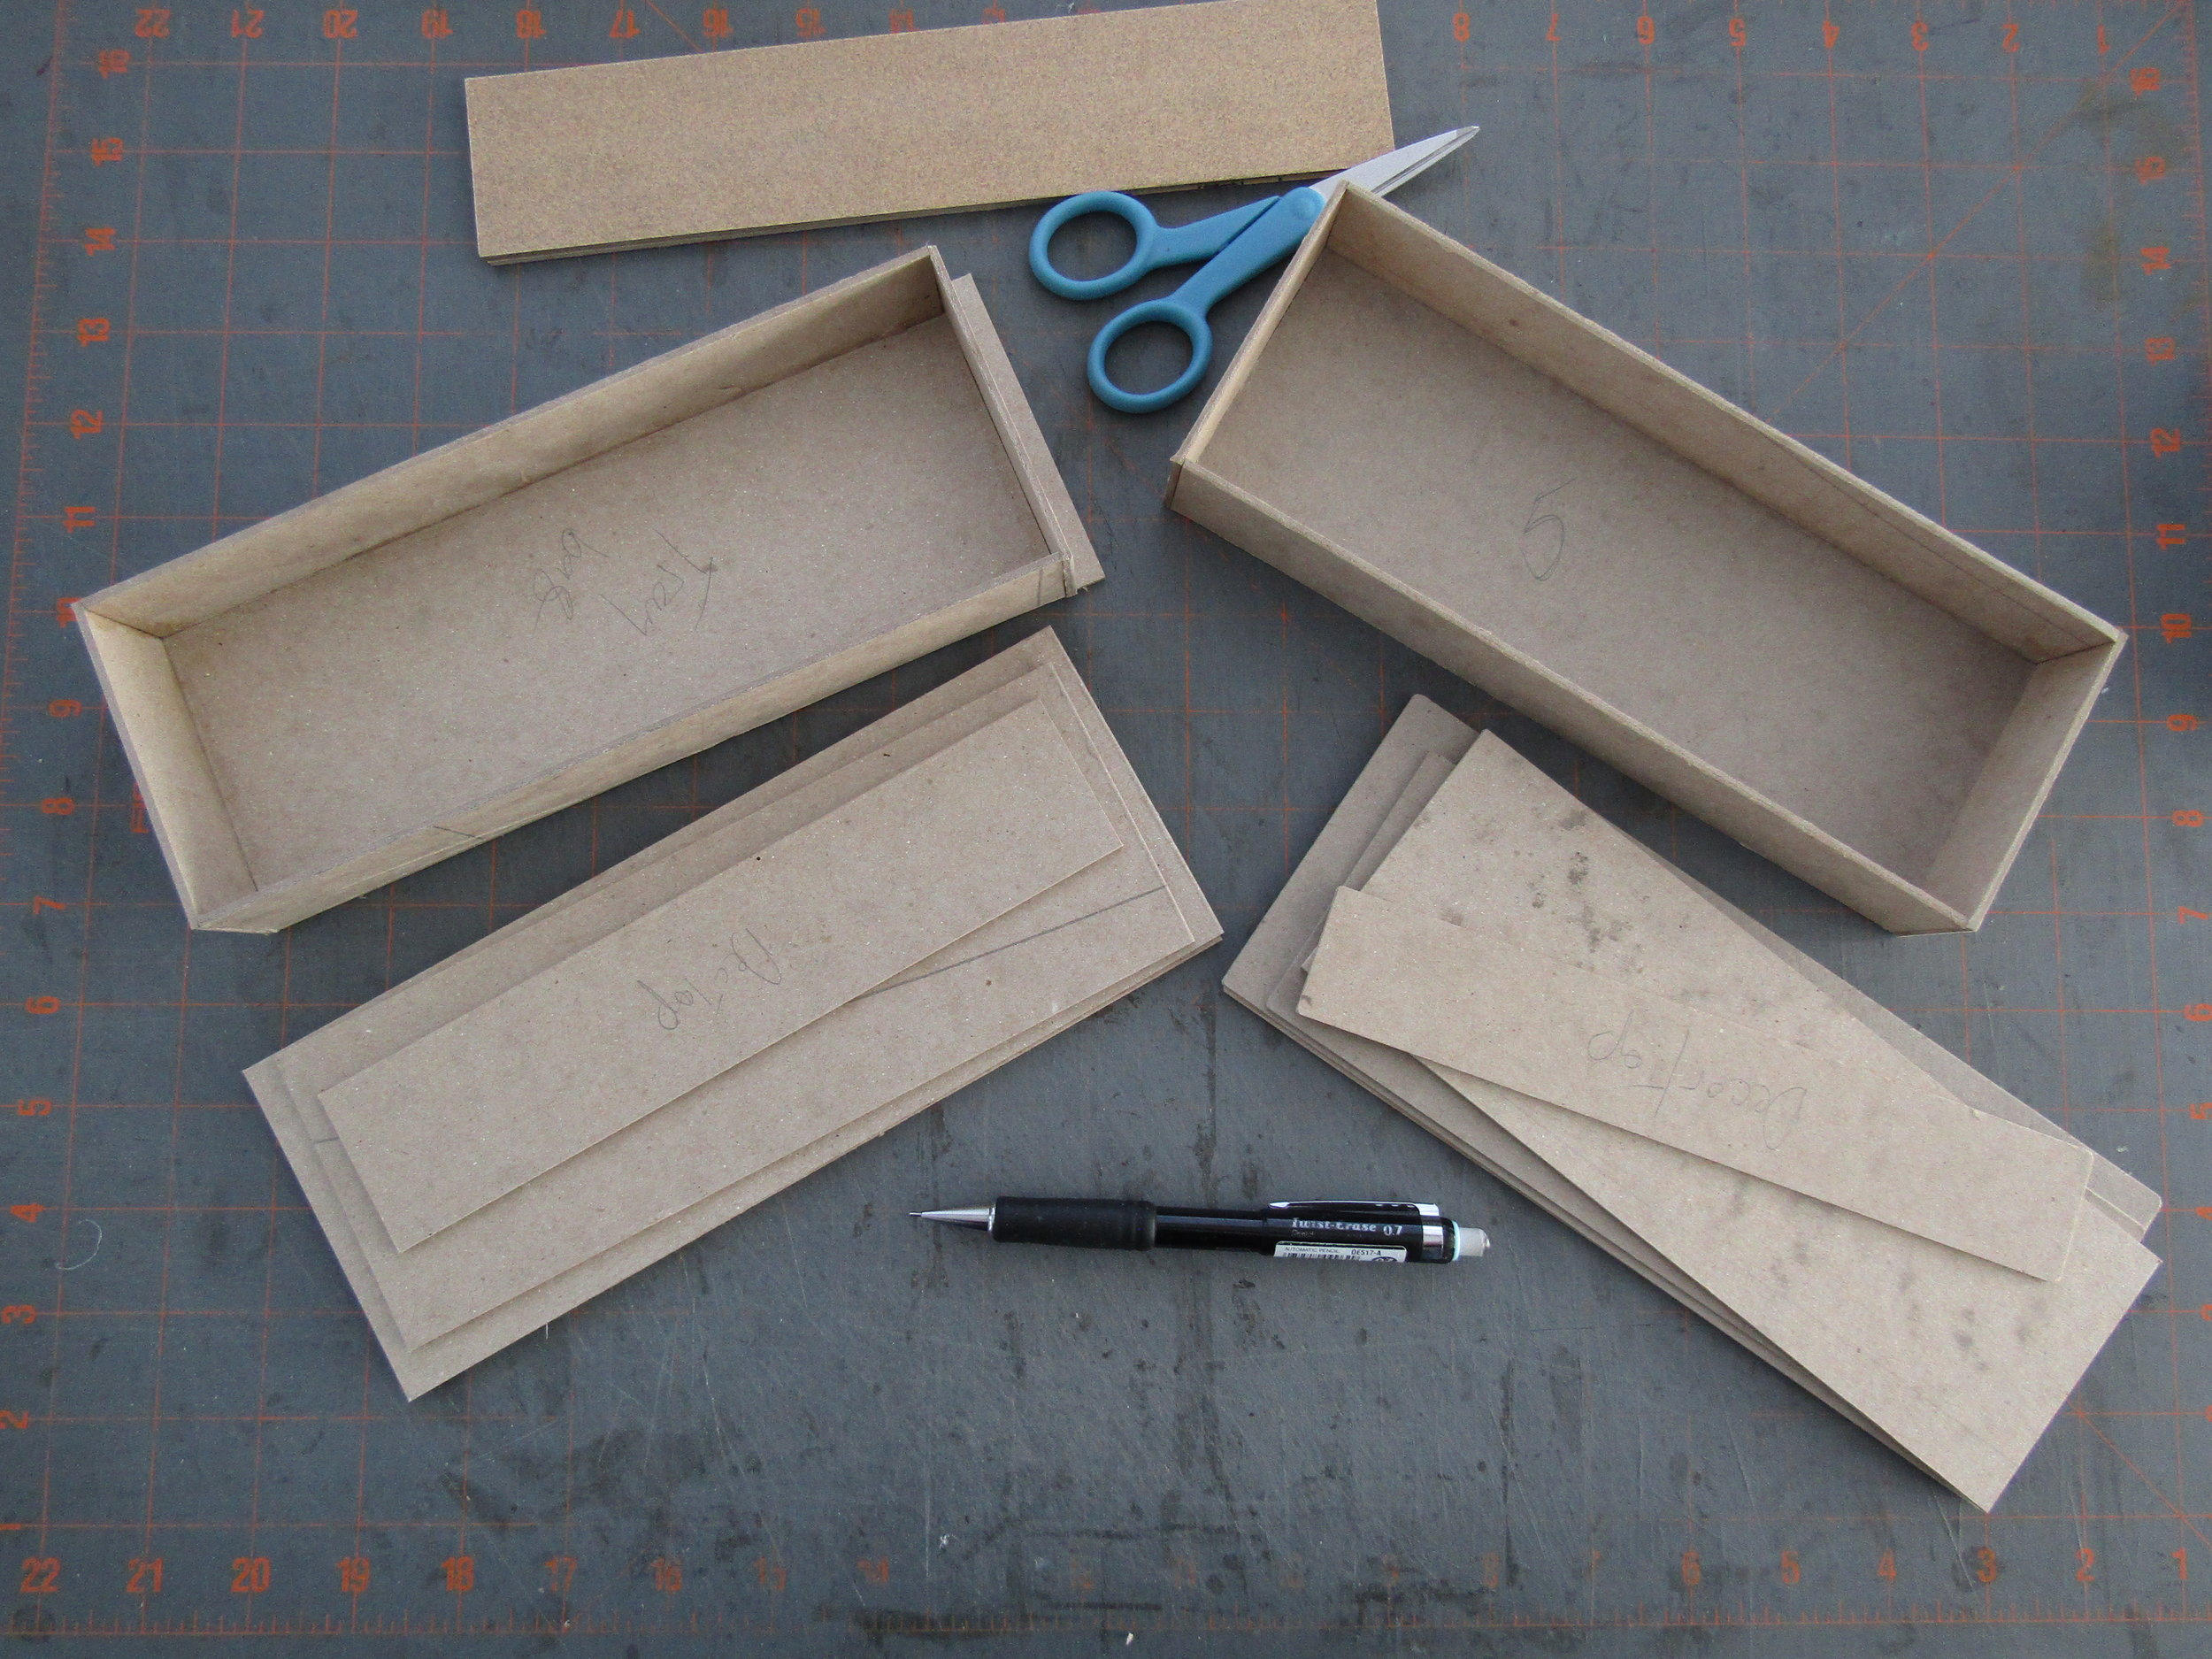 Davey board is cut into the various components. I assembled the trays using PVA. The flat pieces will be covered with papers and joined together to make the lids.